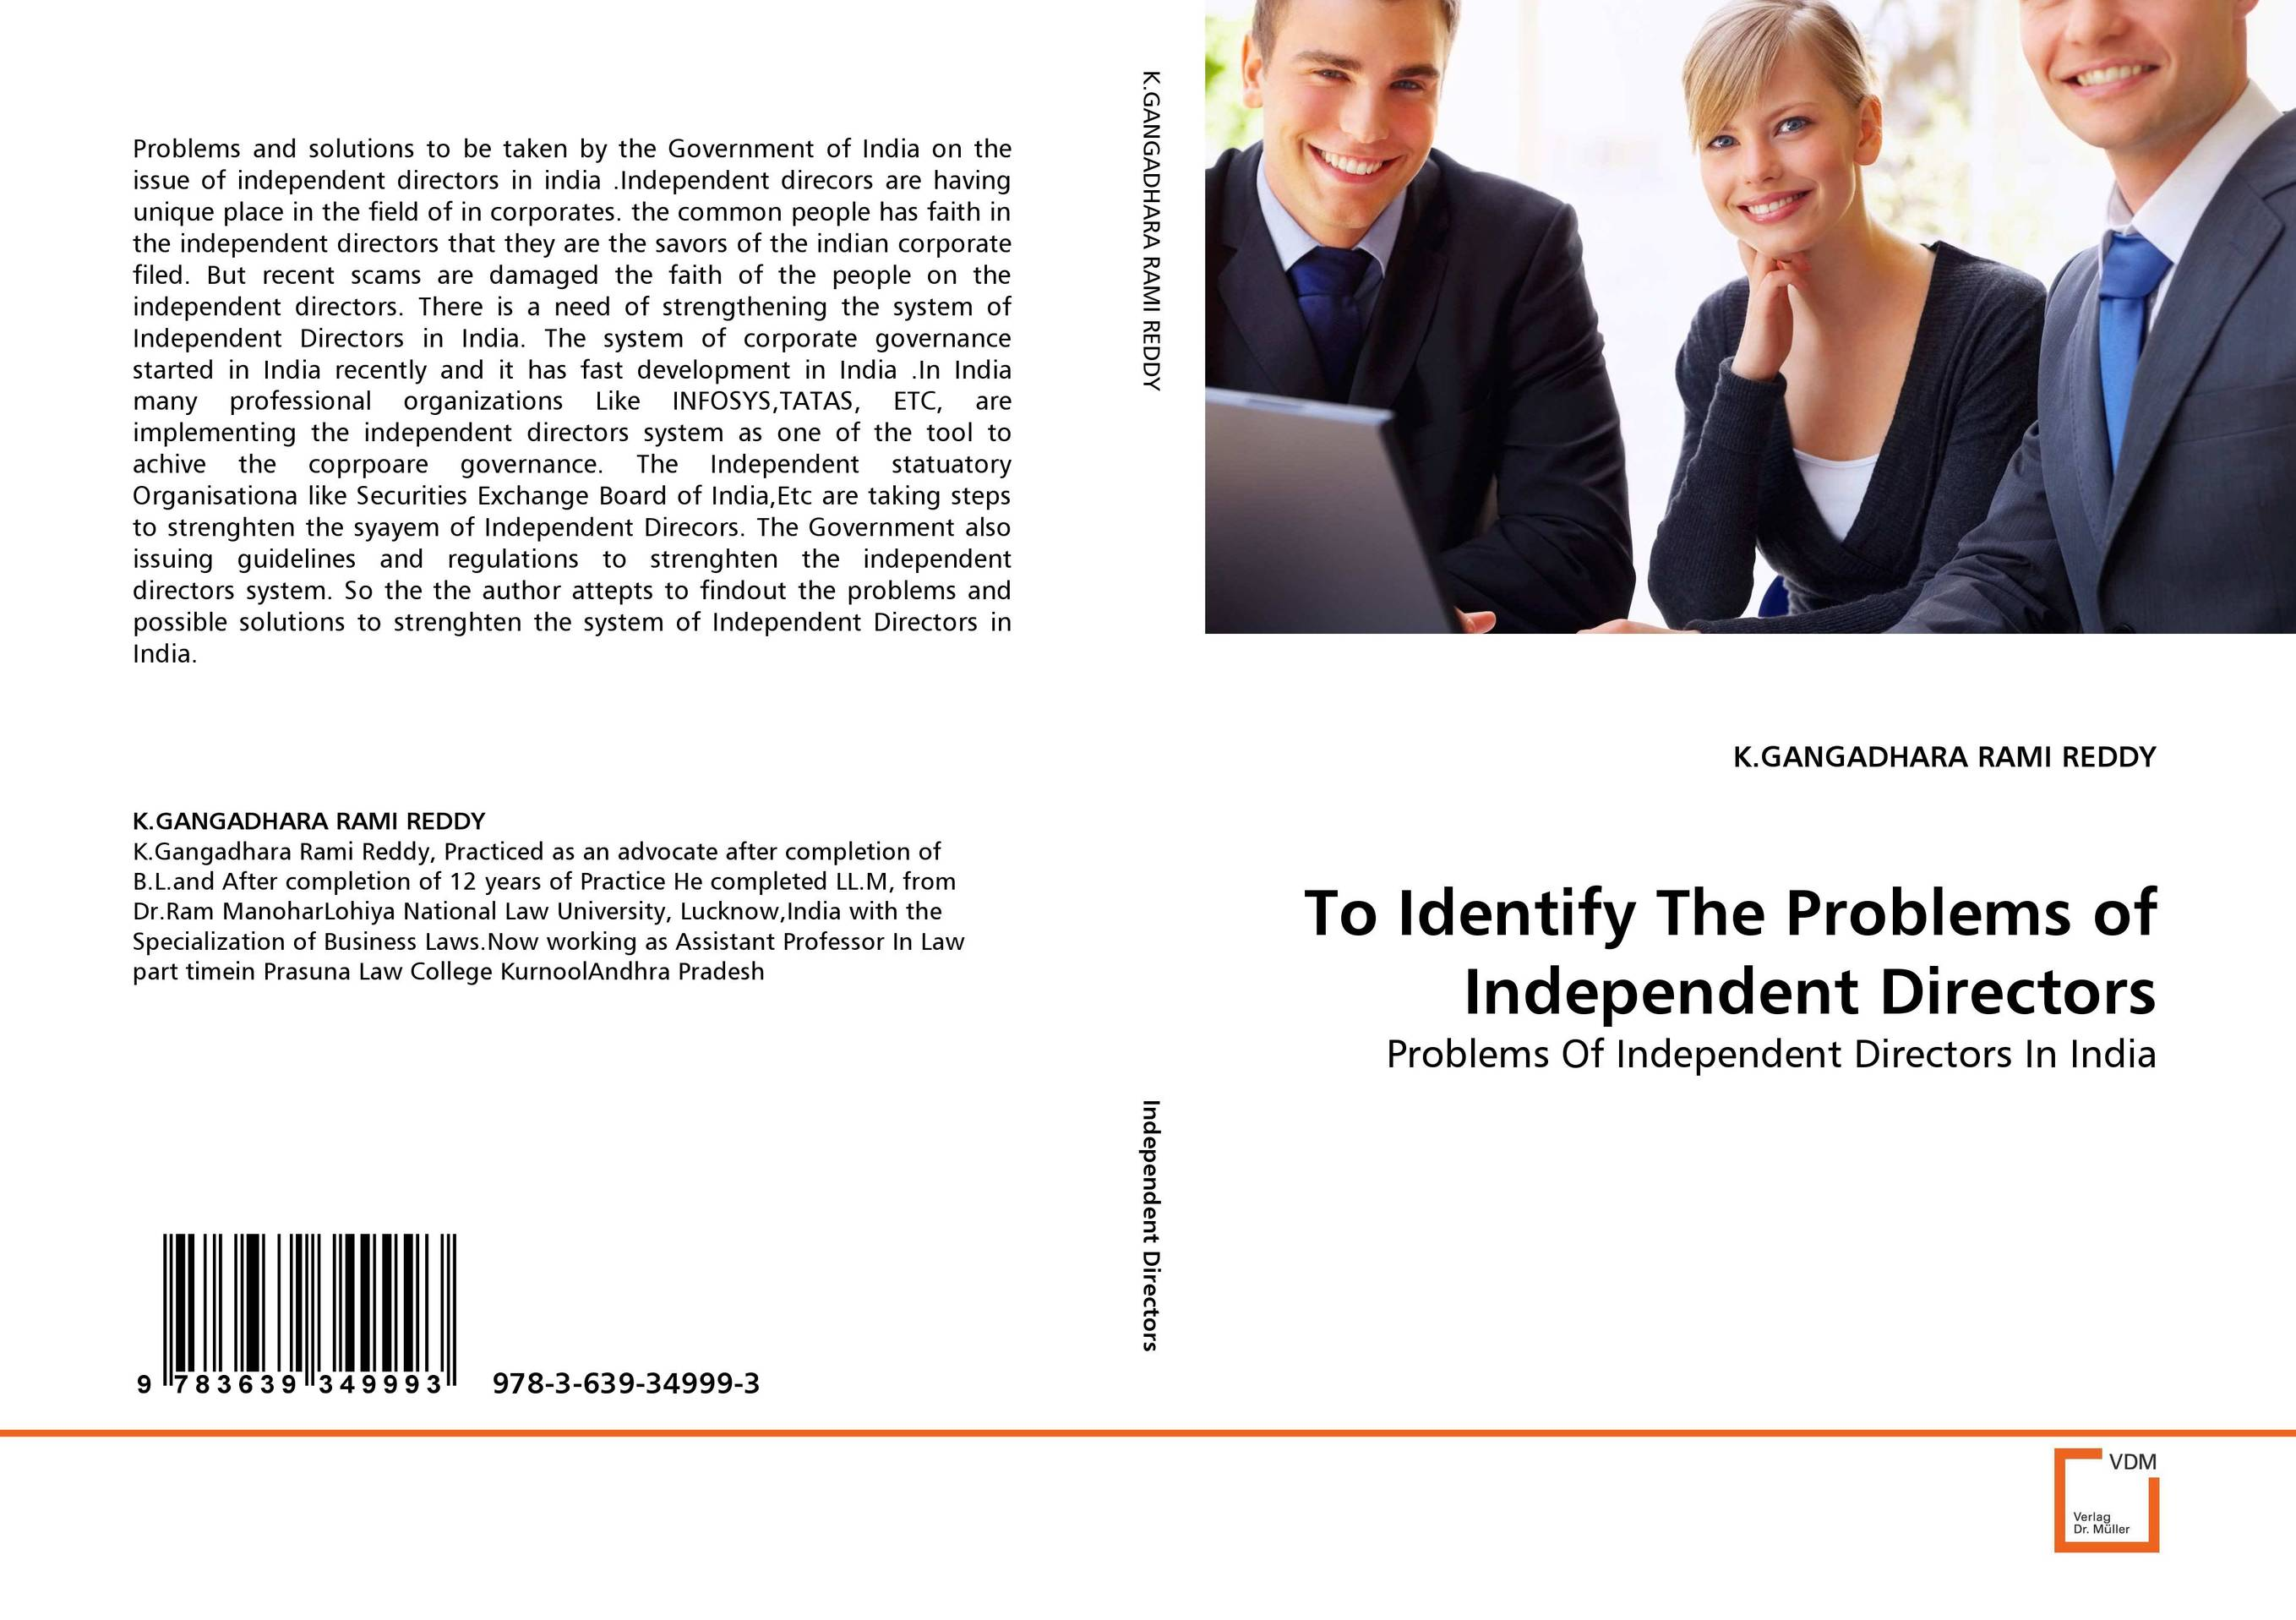 To Identify The Problems of Independent Directors